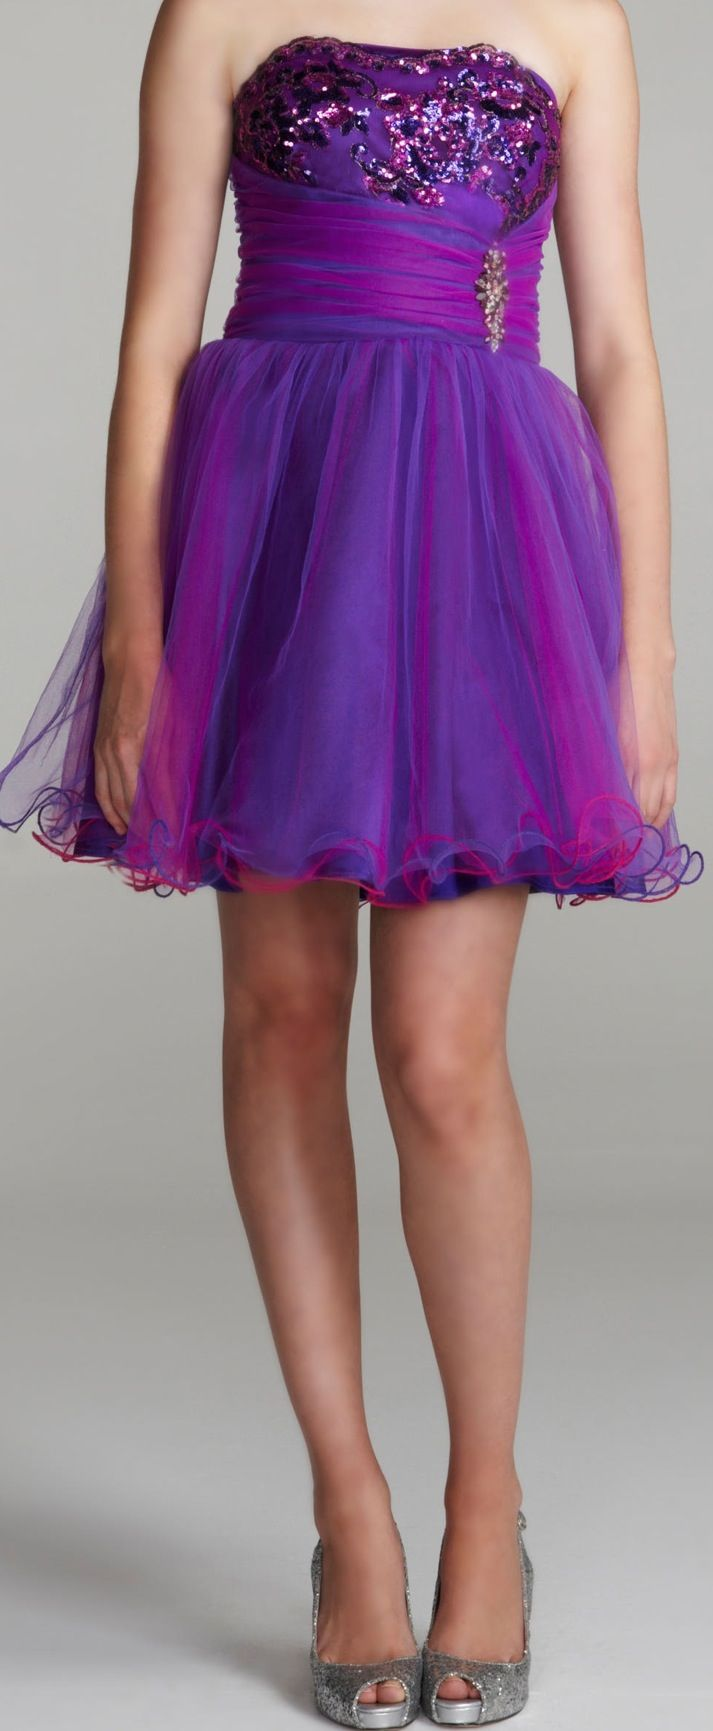 Short purple dress